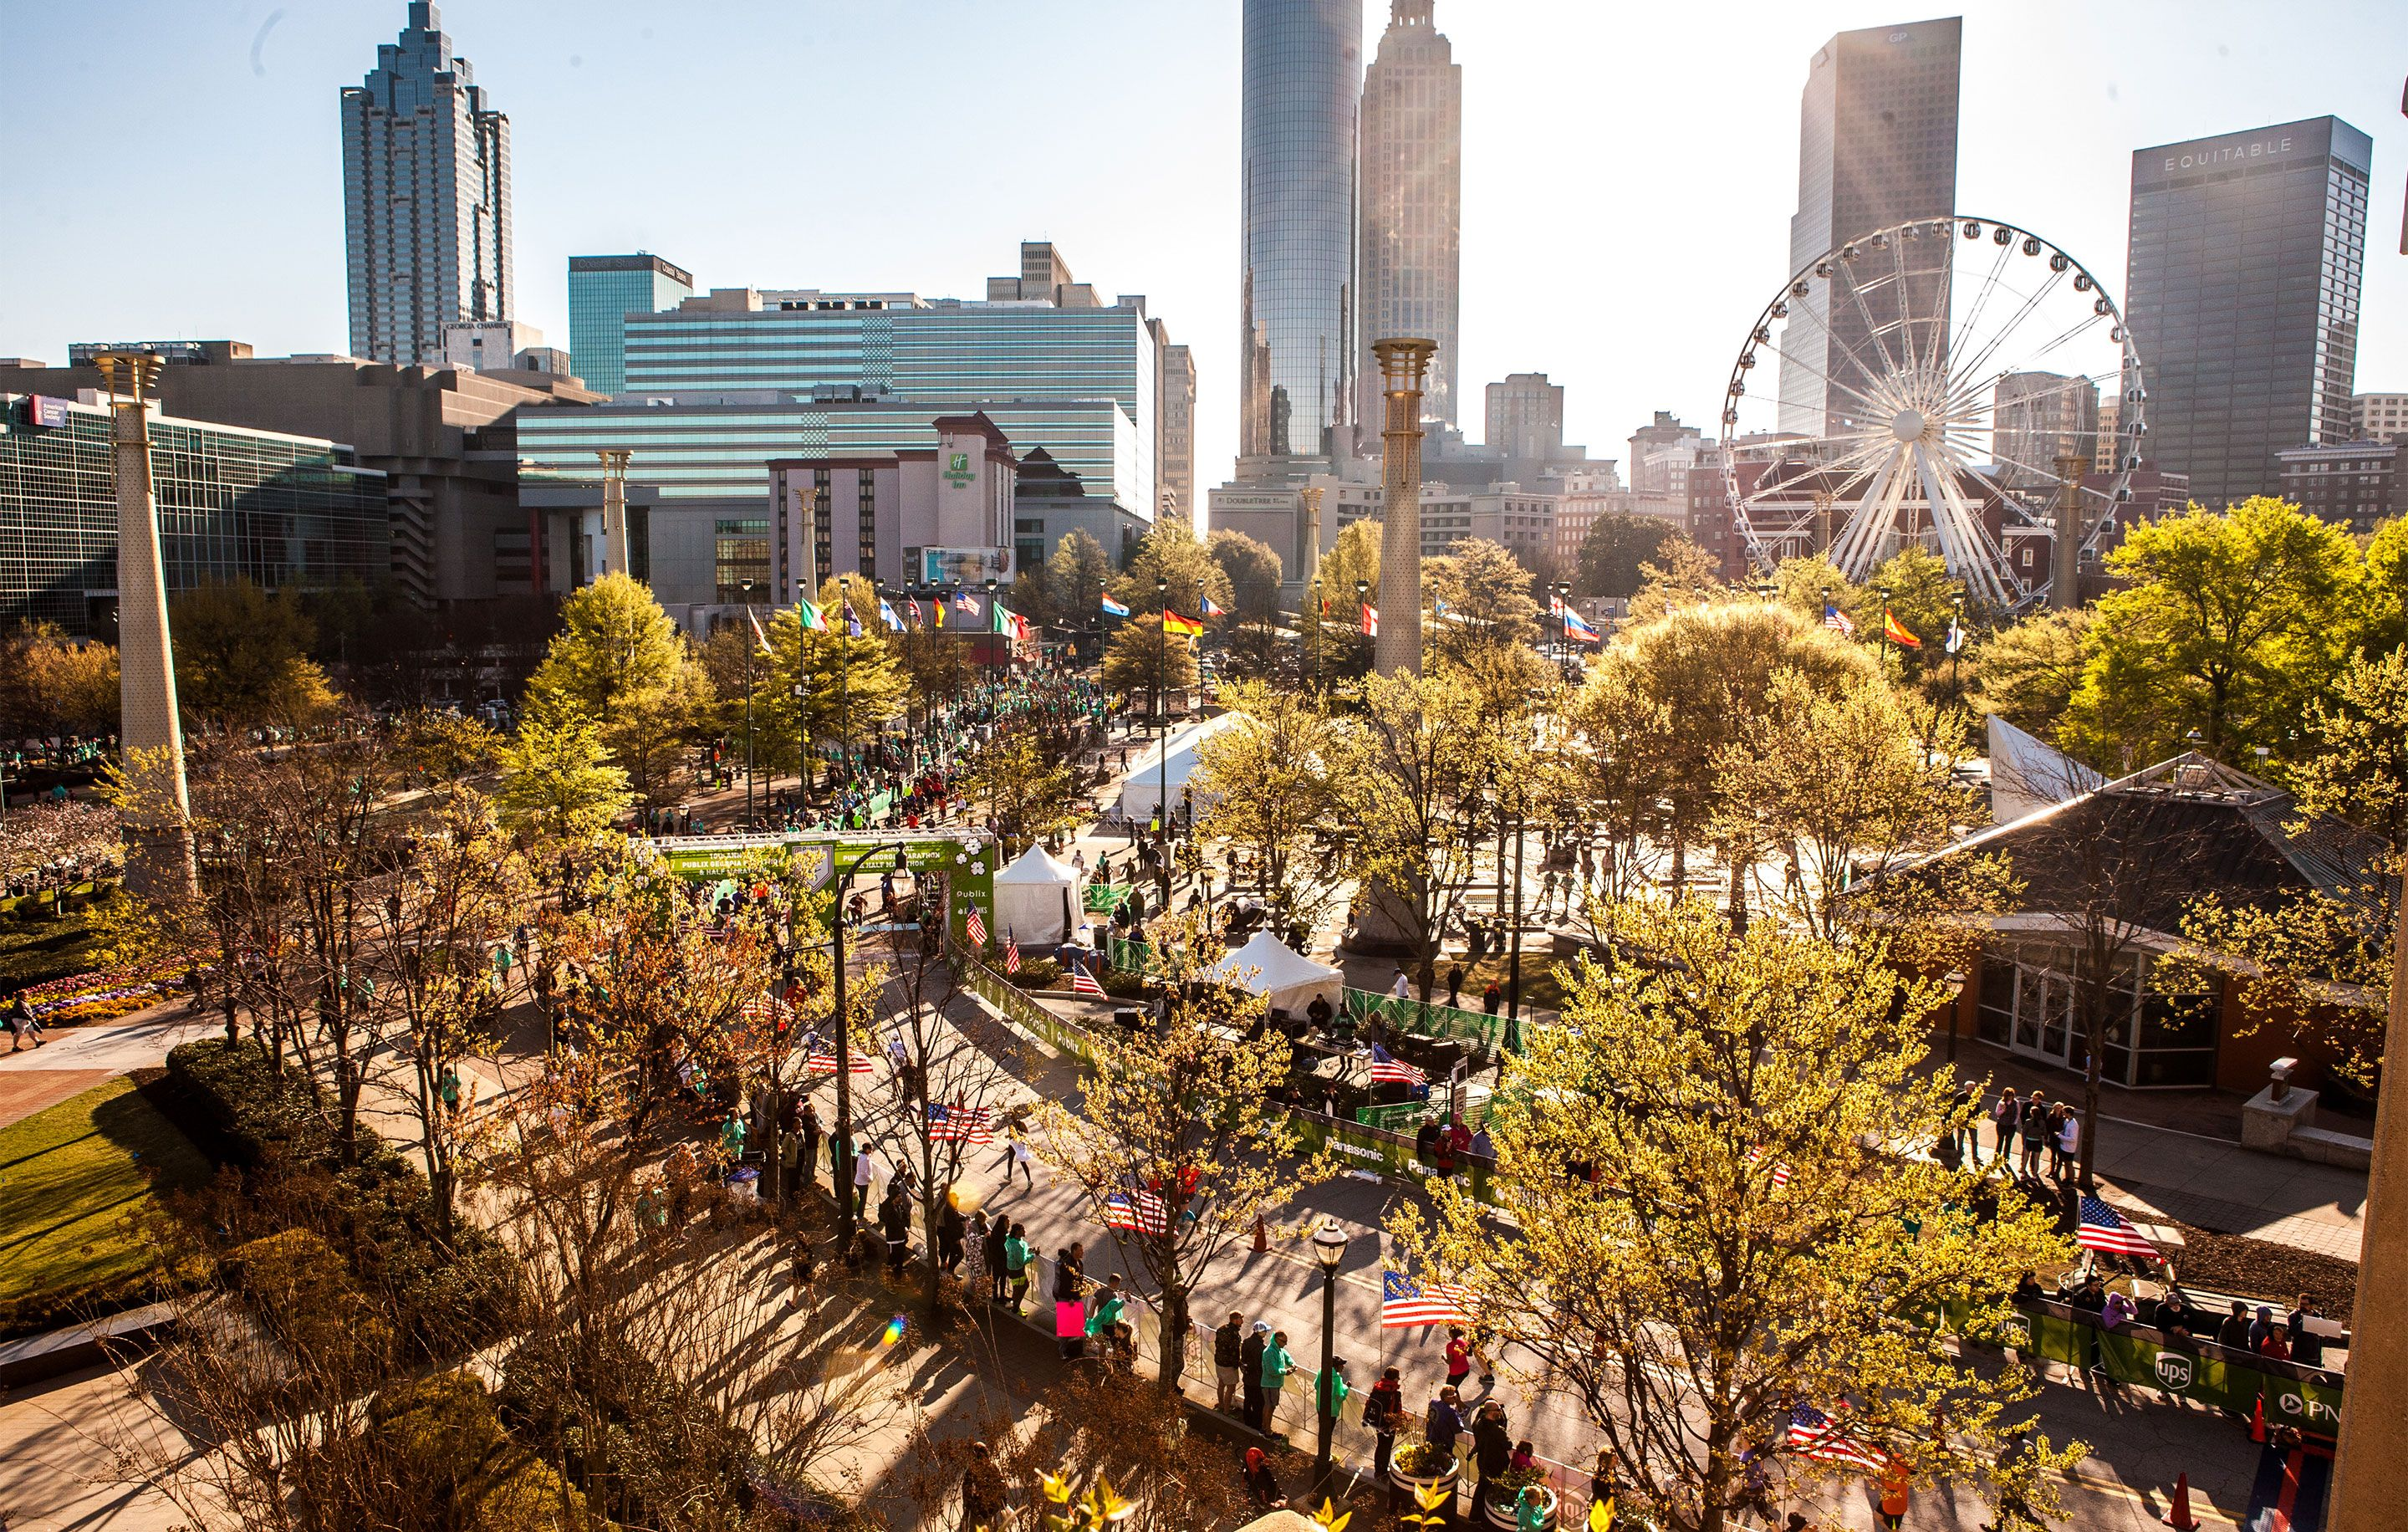 2020 Olympic Marathon Trials - What You Need to Know About